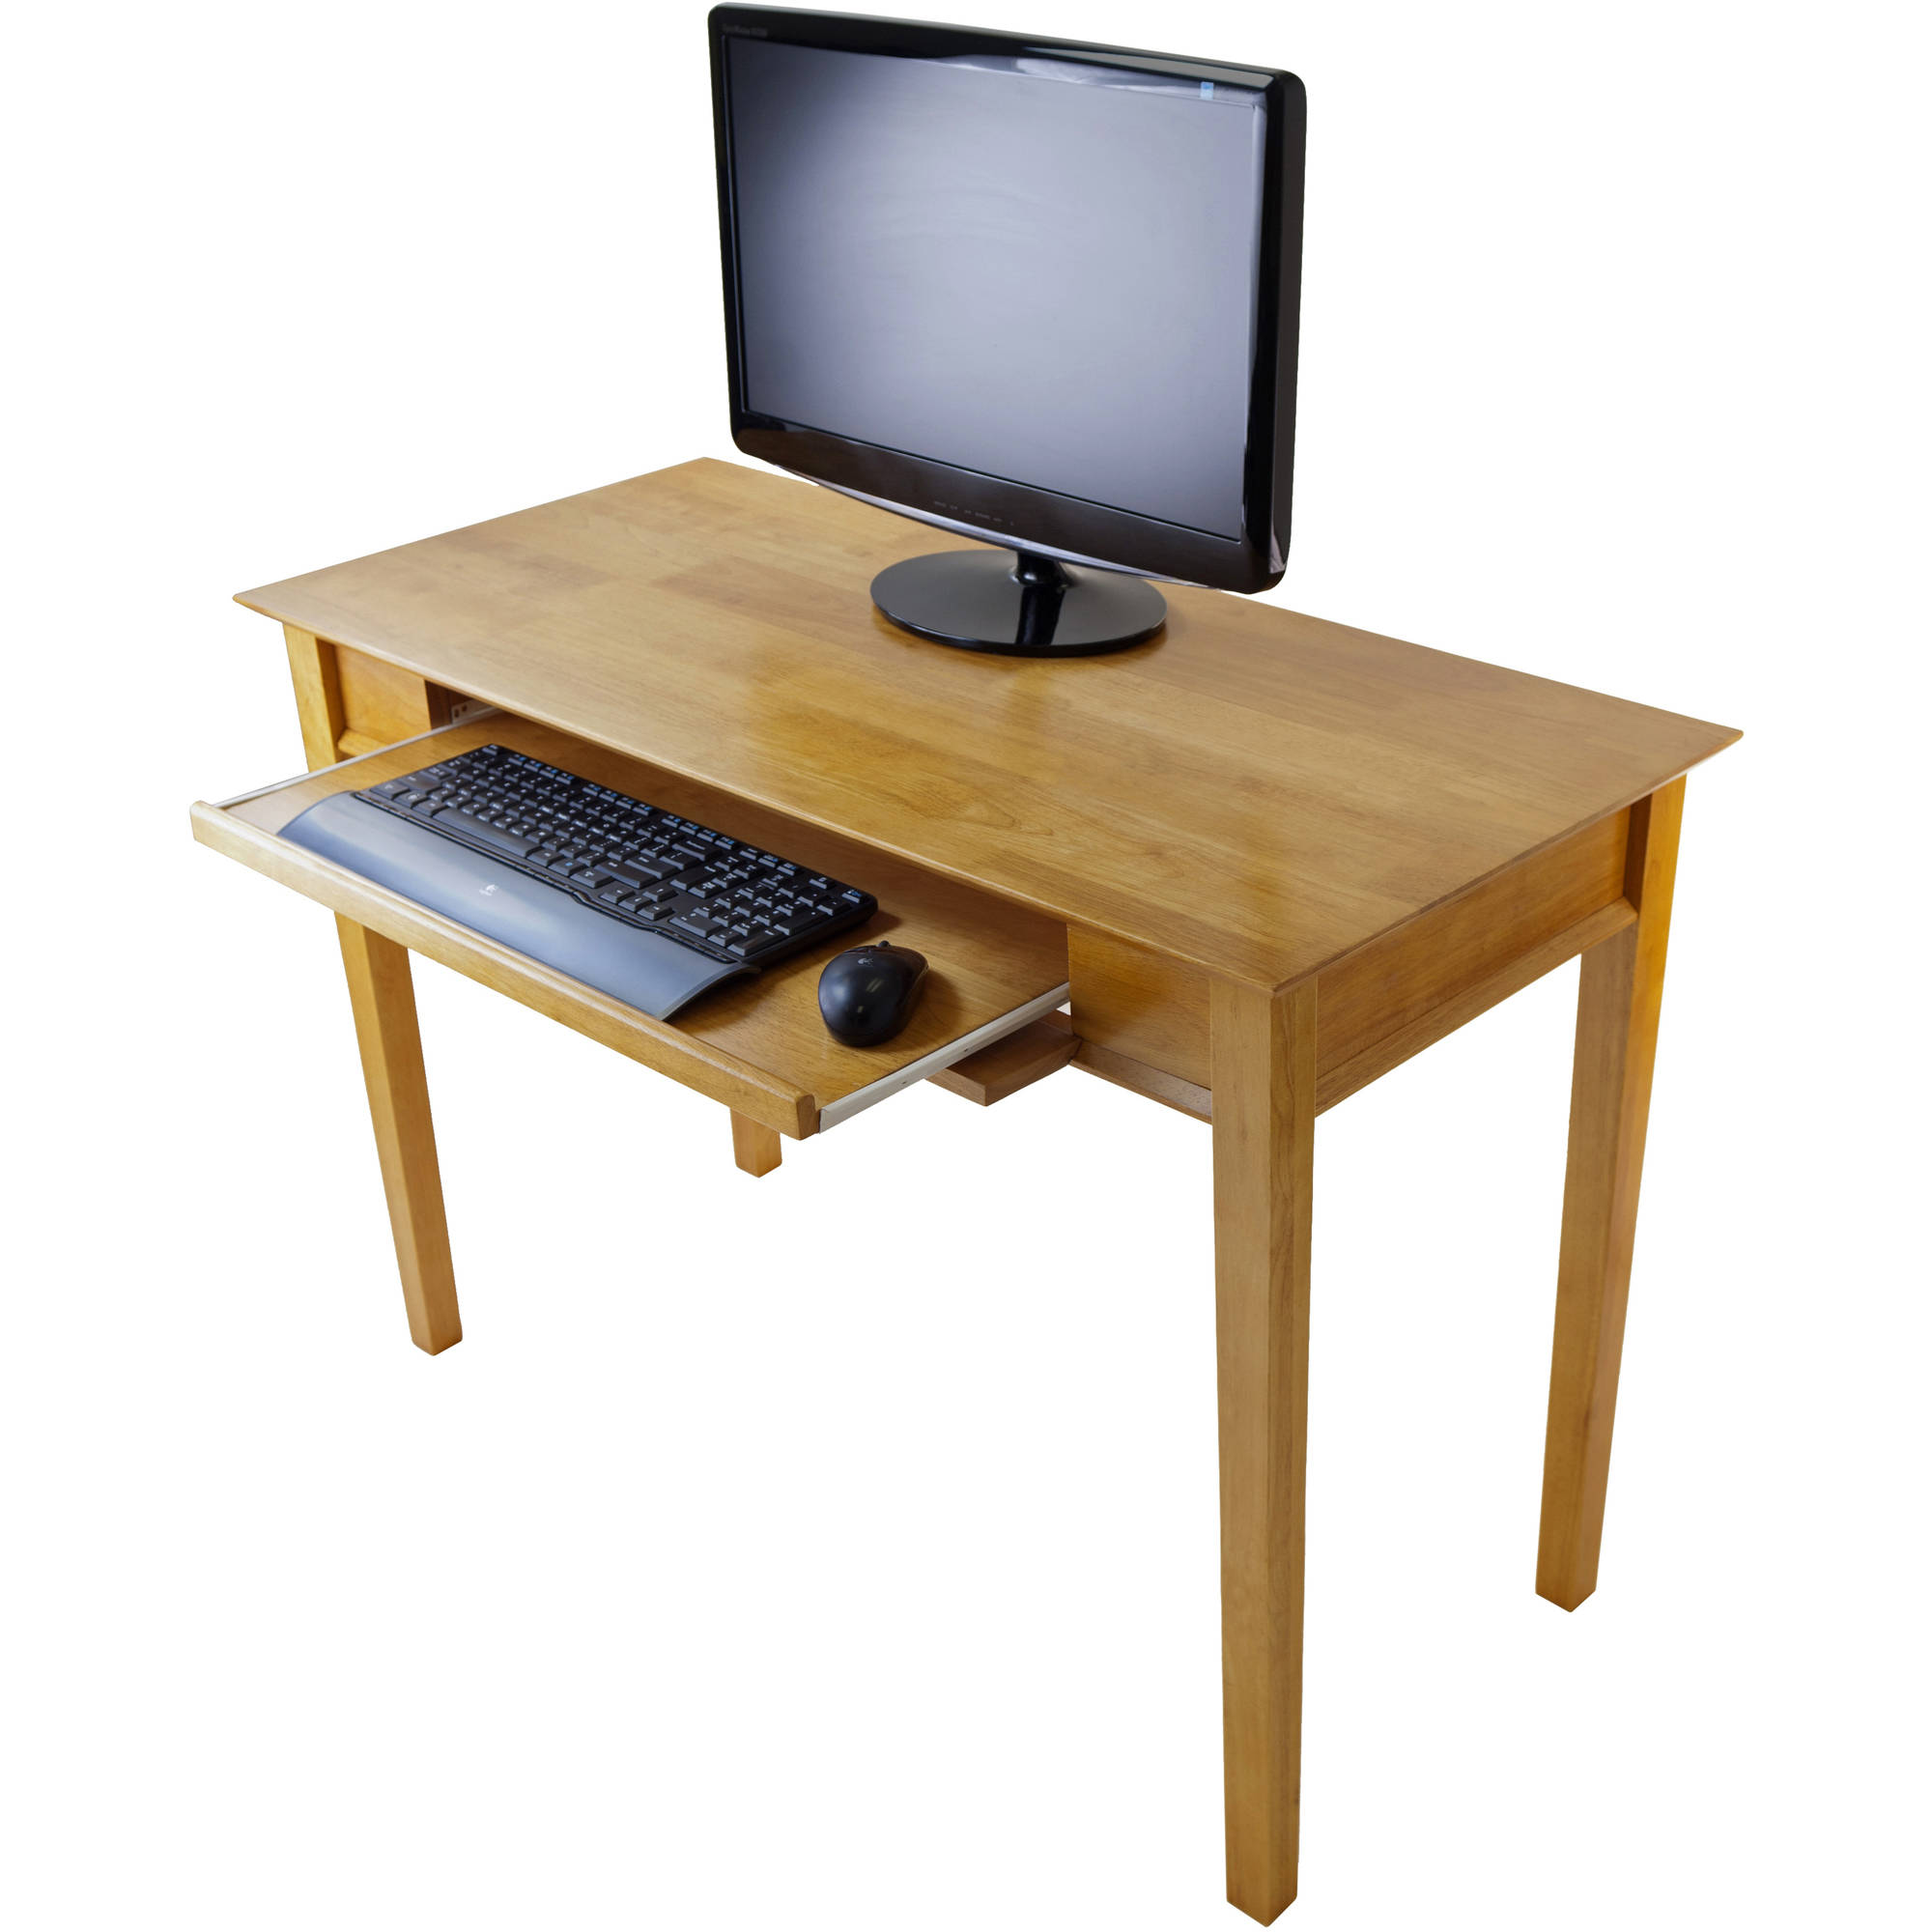 office computer desks. Winsome Wood Studio Home Office Computer Desk, Honey Pine Finish - Walmart.com Desks